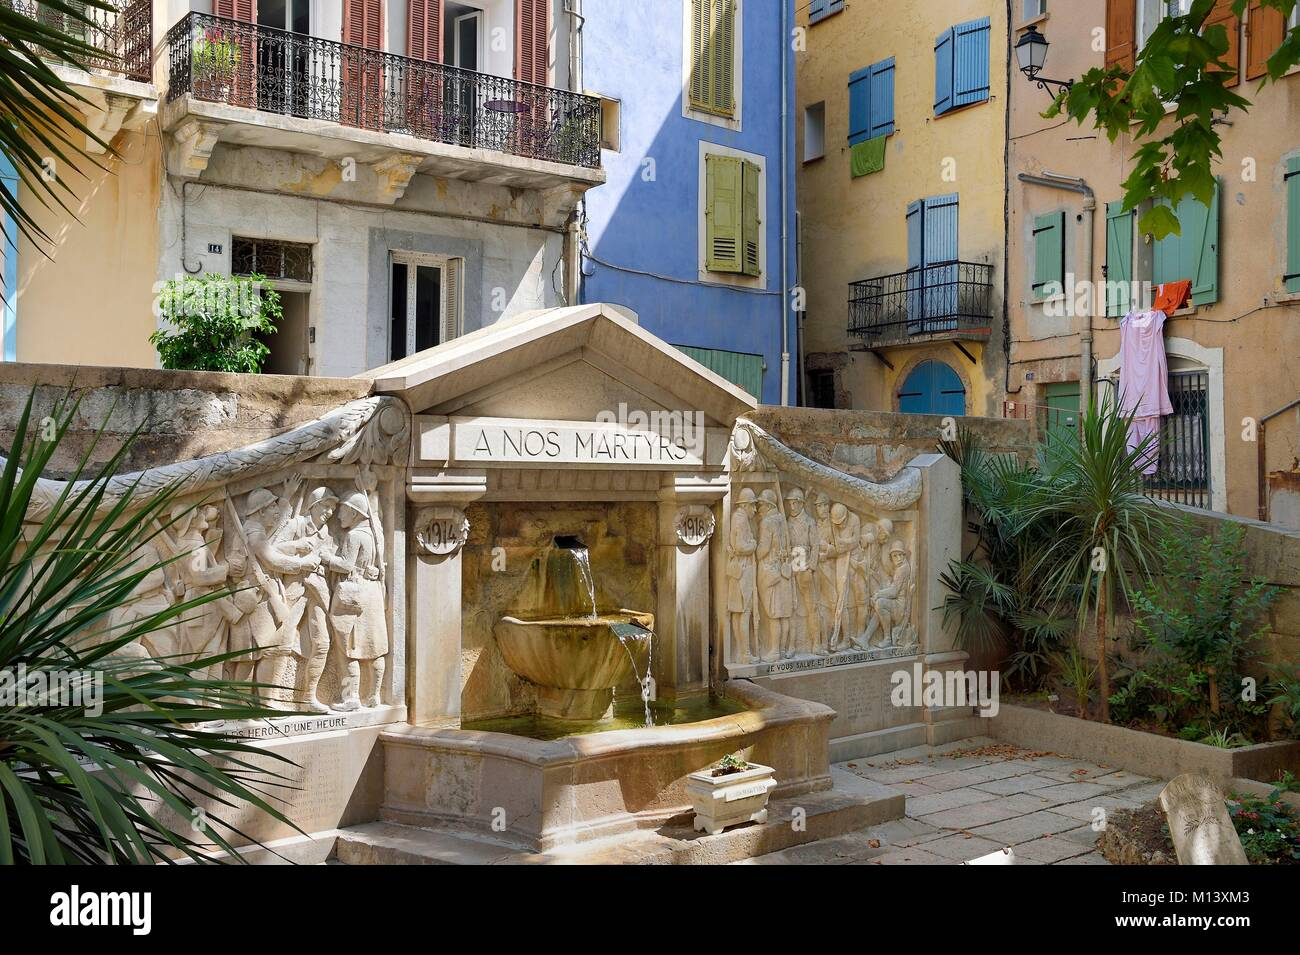 France, Var, Provence Verte, Barjols, fountaine and memorial of the Place Victor Hugo - Stock Image